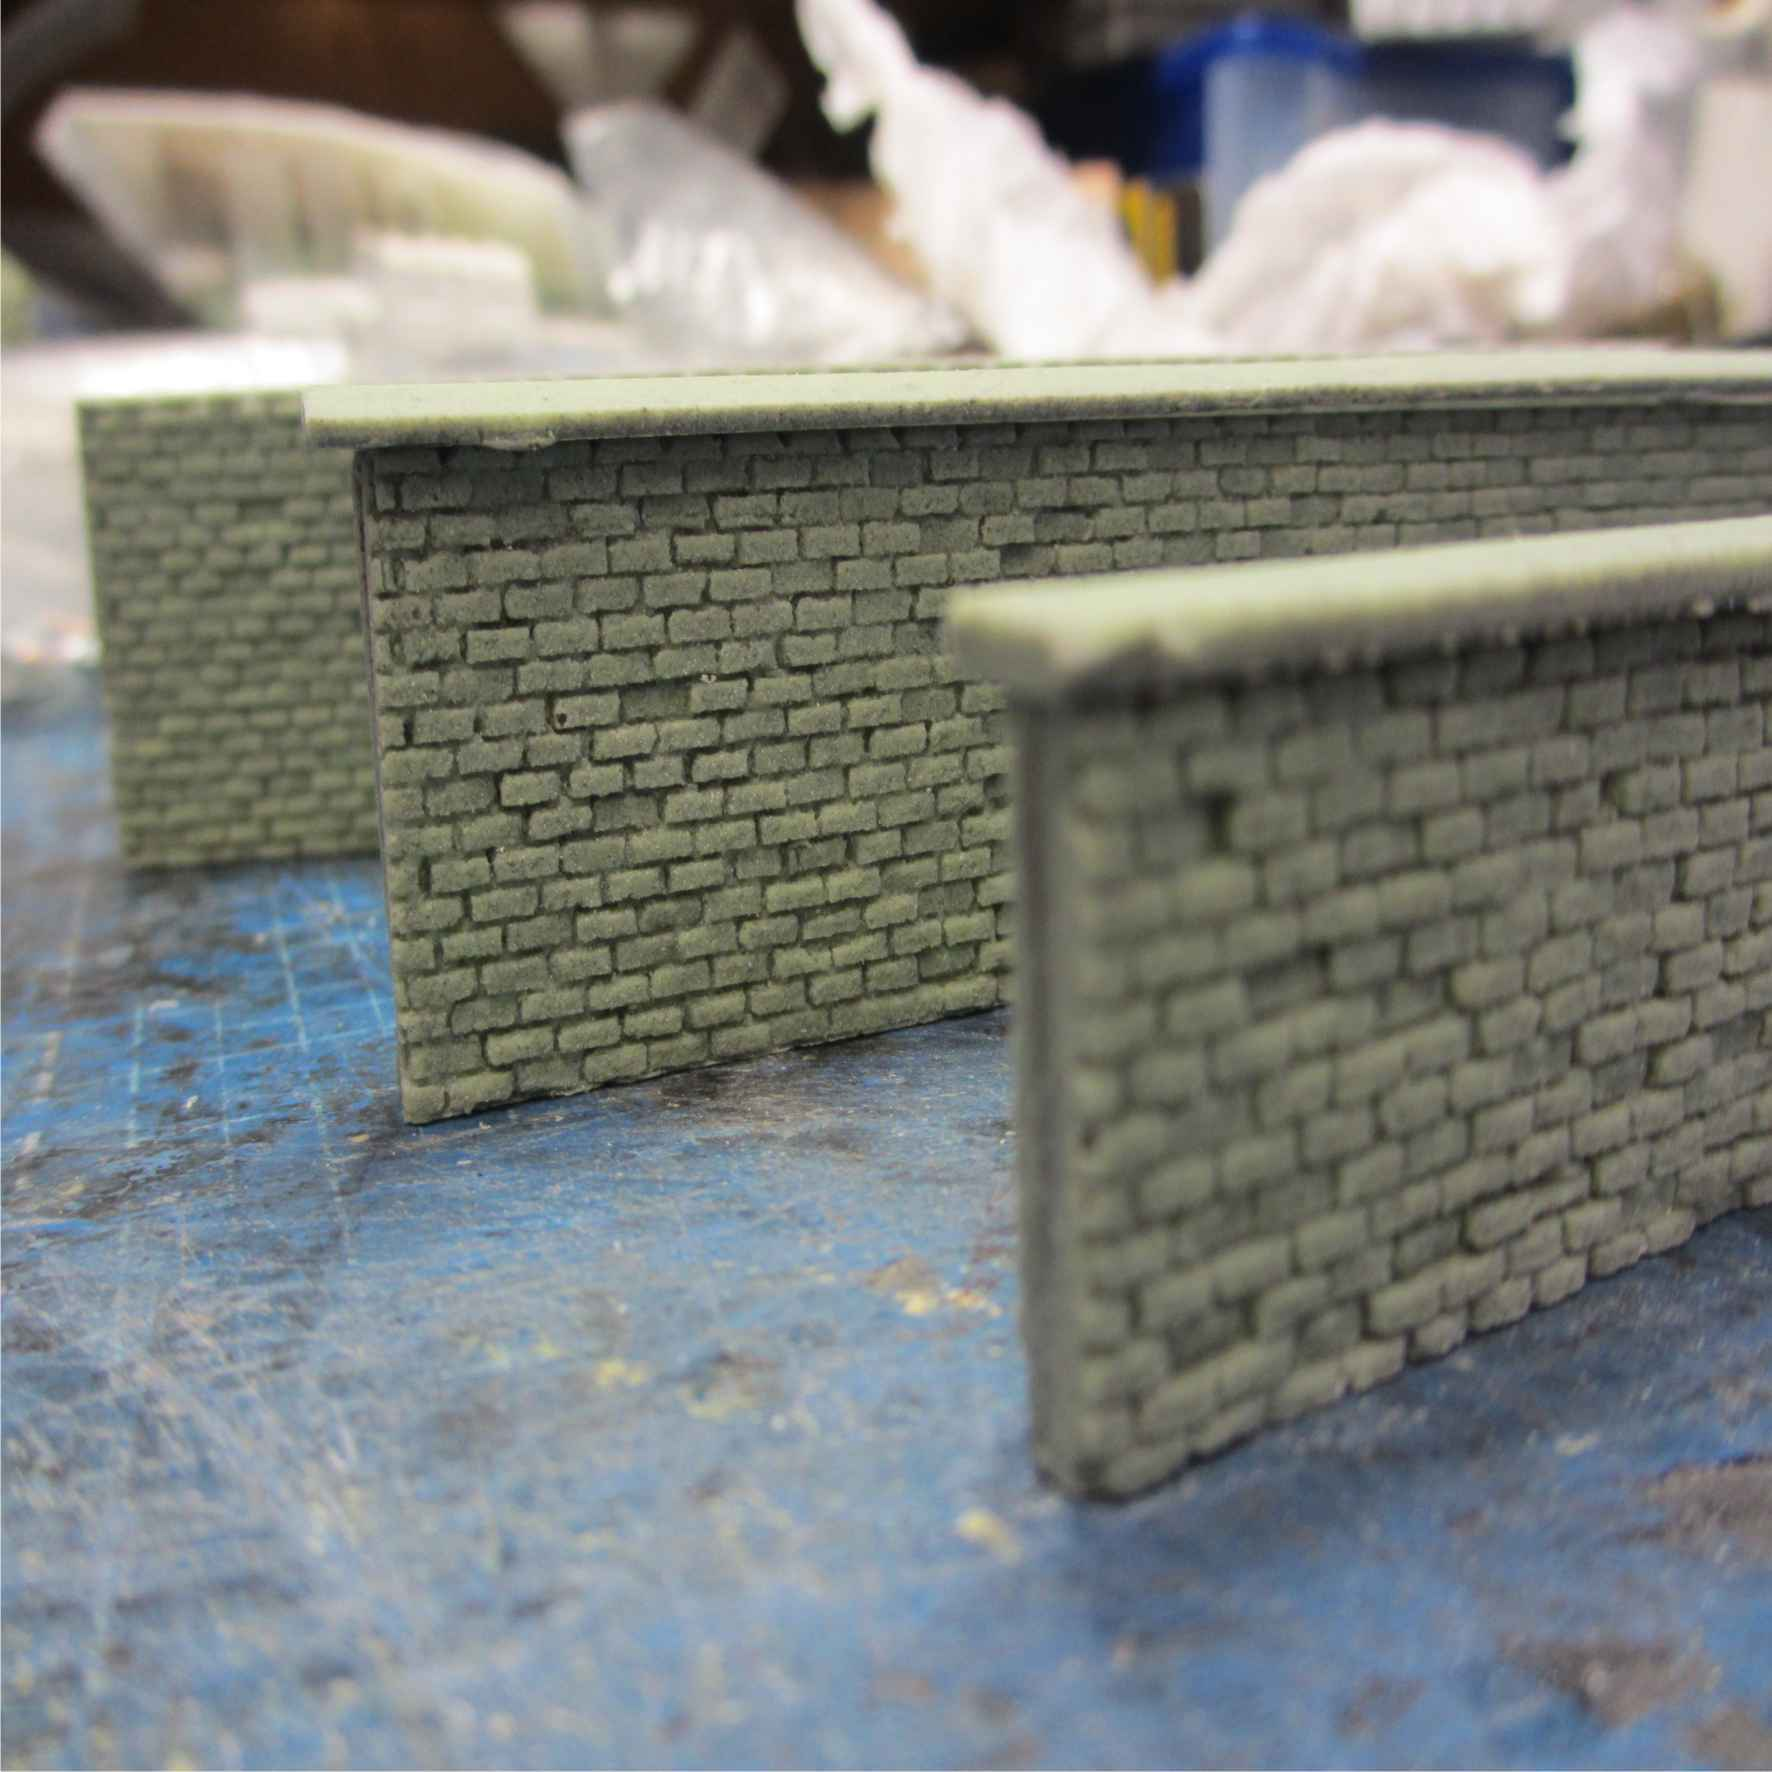 6' brick wall set